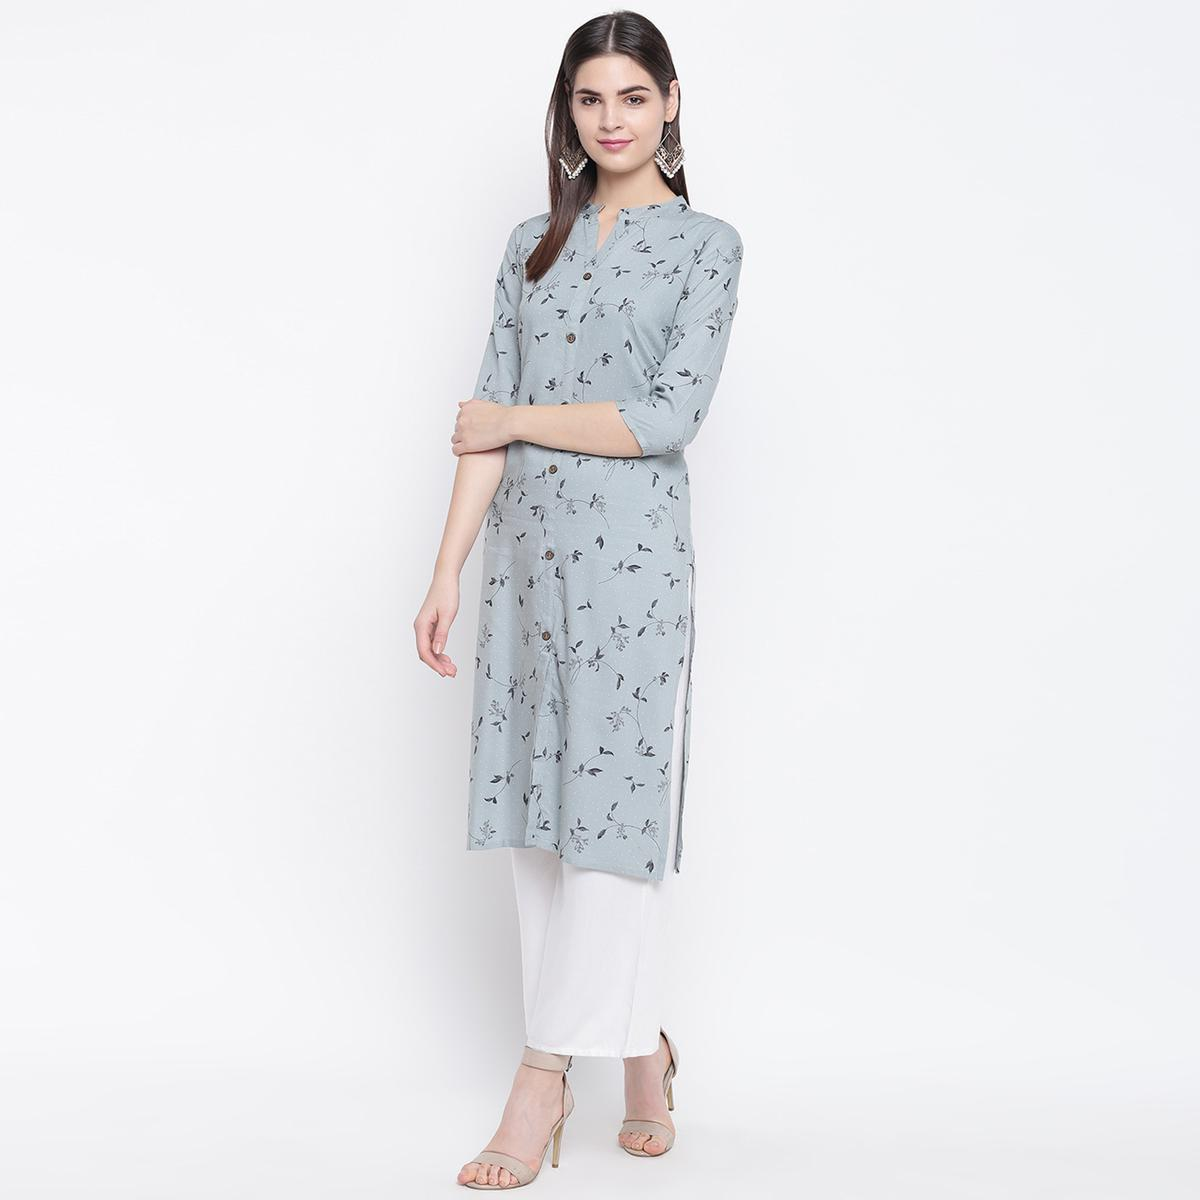 Captivating Grey Colored Casual Wear Printed Cotton Kurti